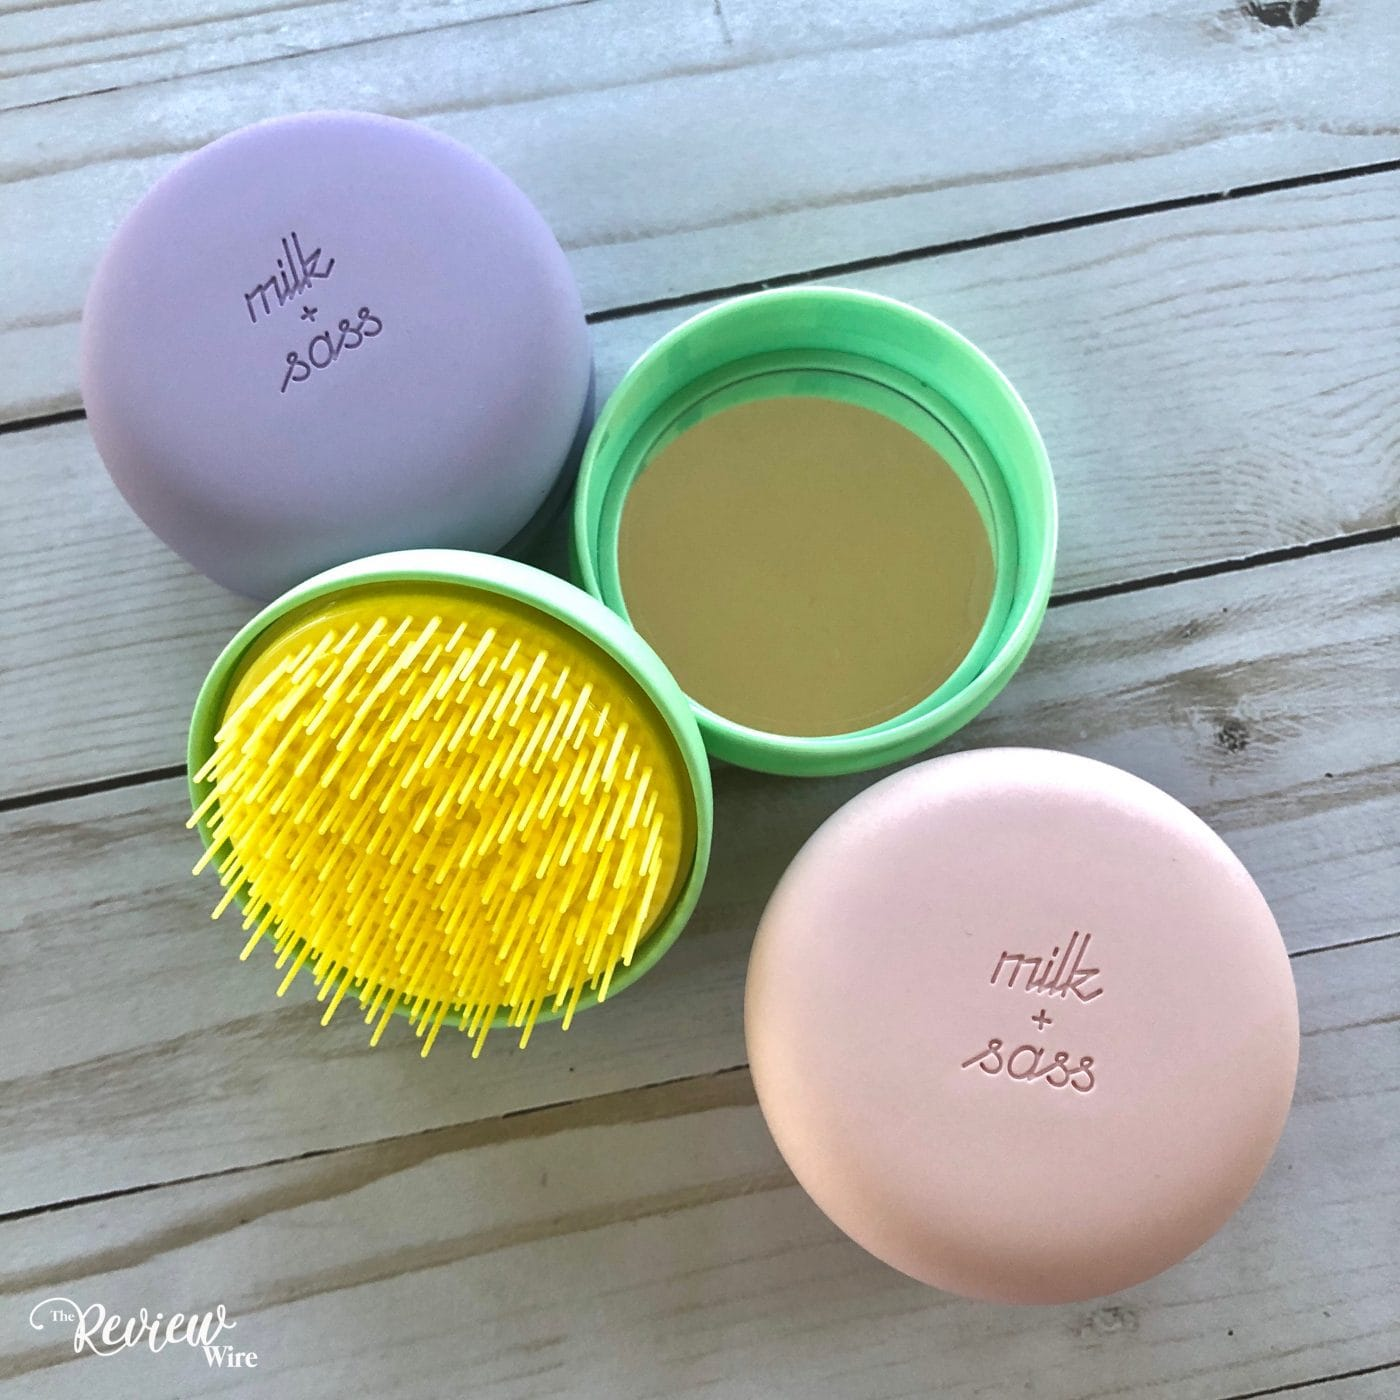 The Review Wire: Milk & Sass Macaron Hairbrush Video Review